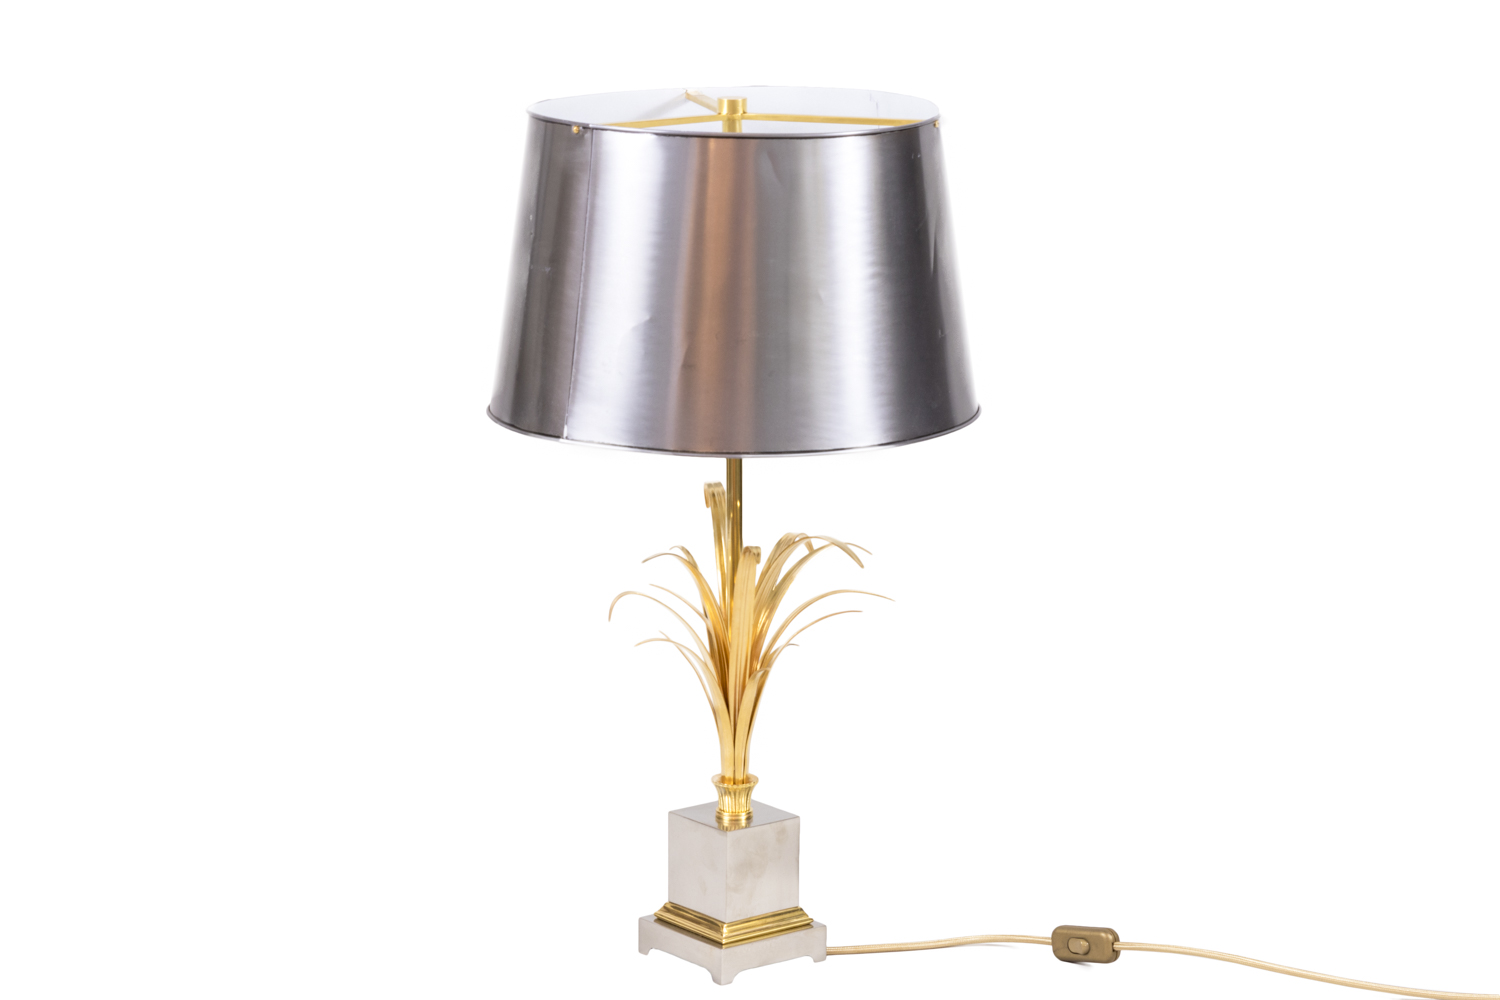 maison charles reeds lamp gilt and silvered bronze